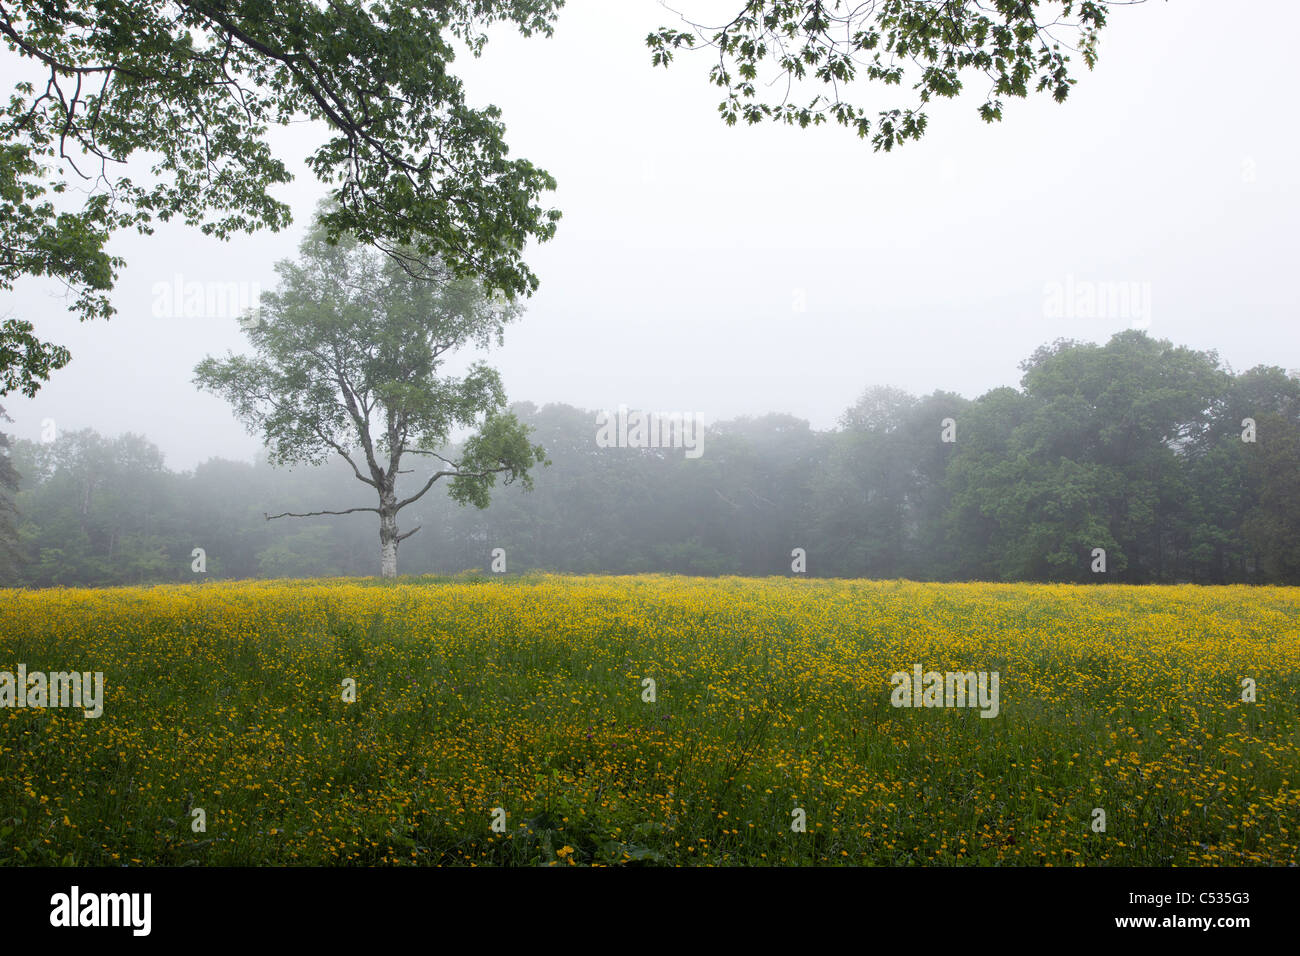 A field of yellow flowers in maine stock photo 37564243 alamy a field of yellow flowers in maine mightylinksfo